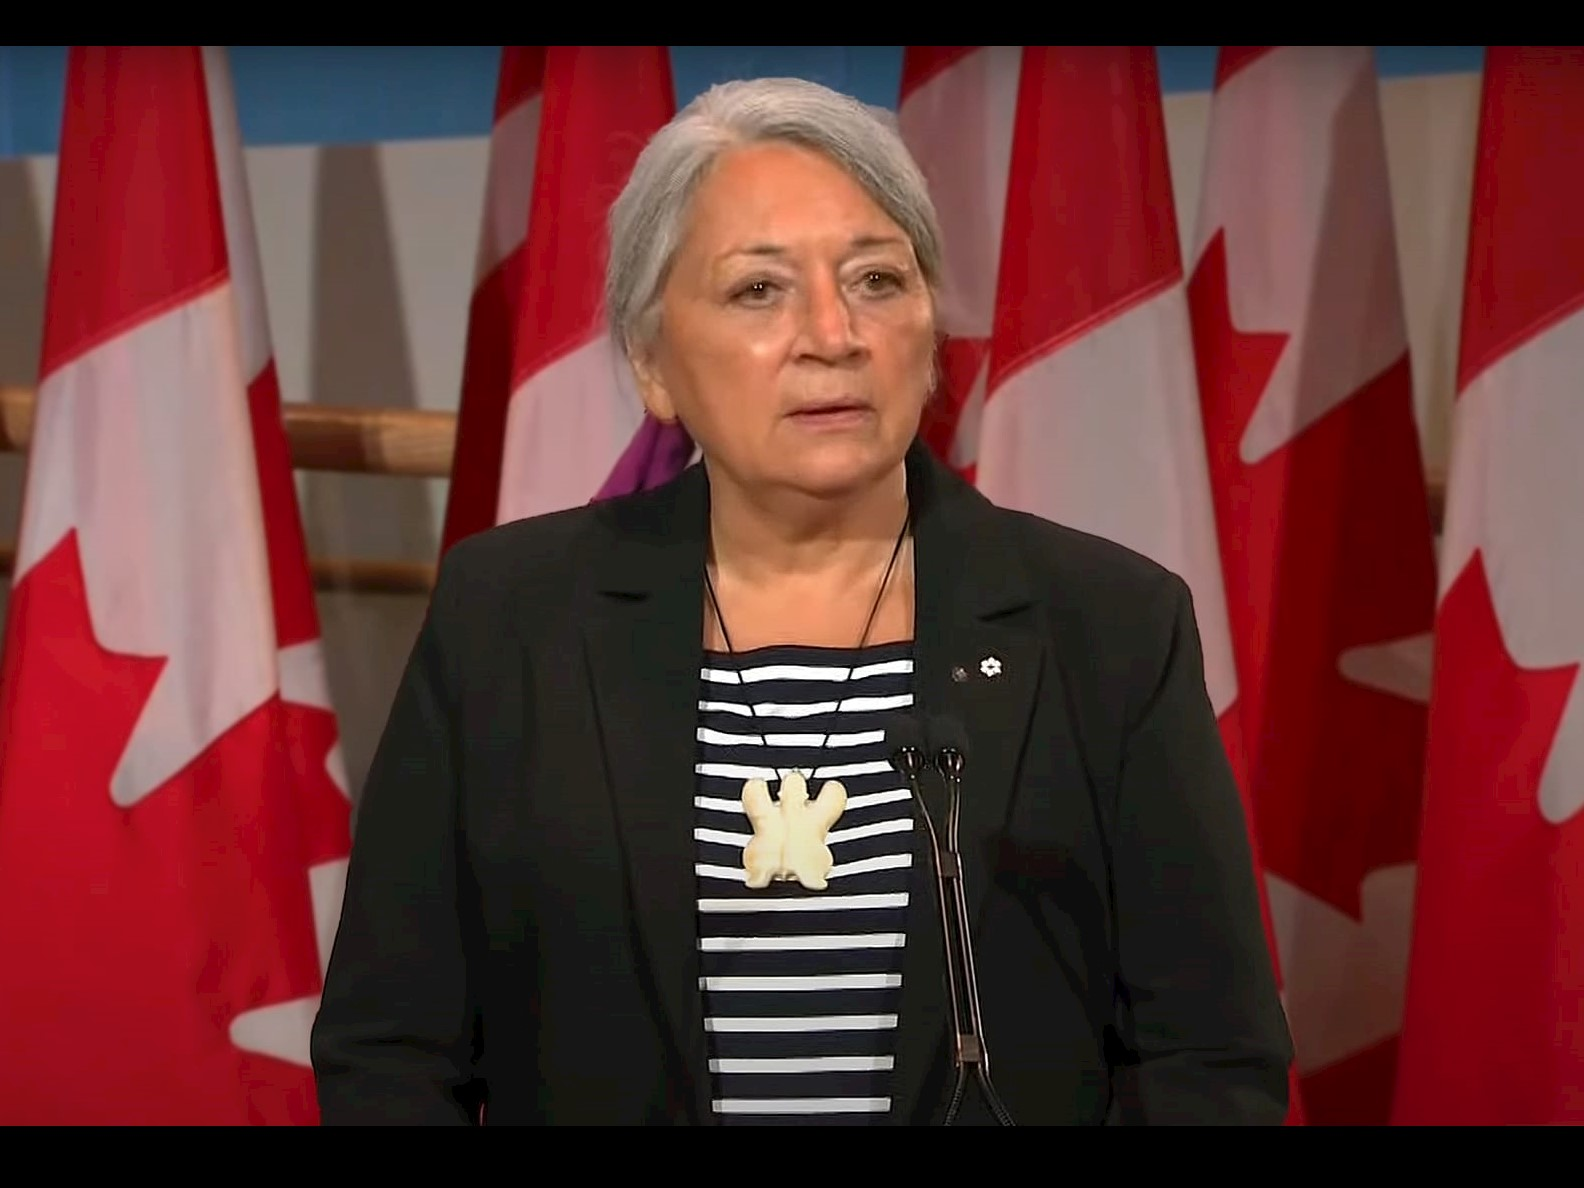 Mary Simon - Canada's First Indigenous Governor General